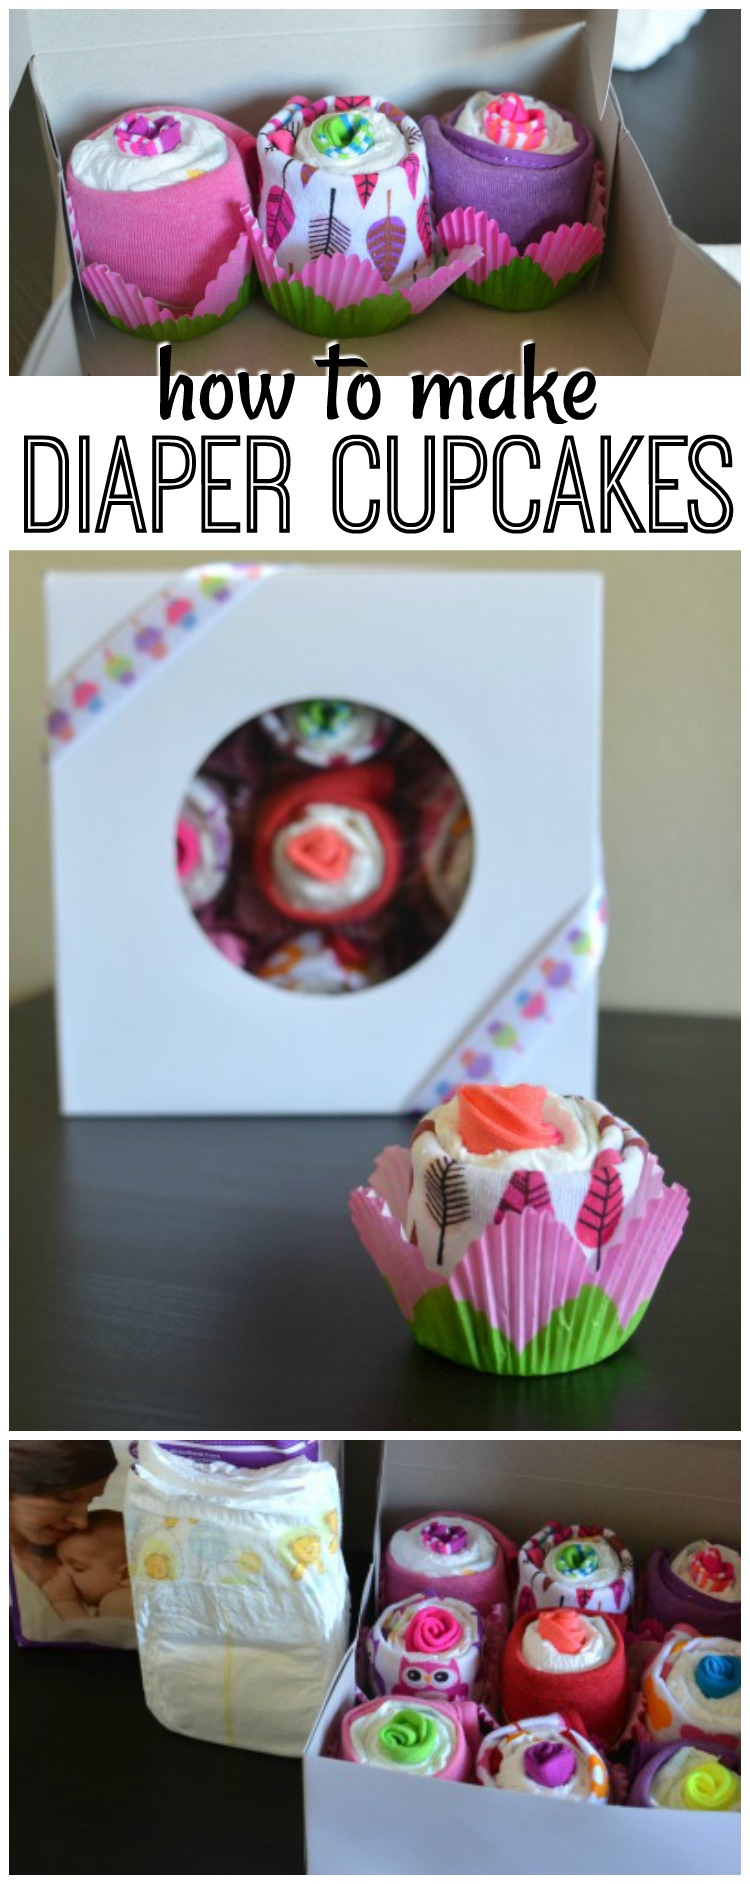 This tutorial on how to make diaper cupcakes is not only easy but easy on the budget! It's the perfect gift to accompany a registry item for a baby shower.